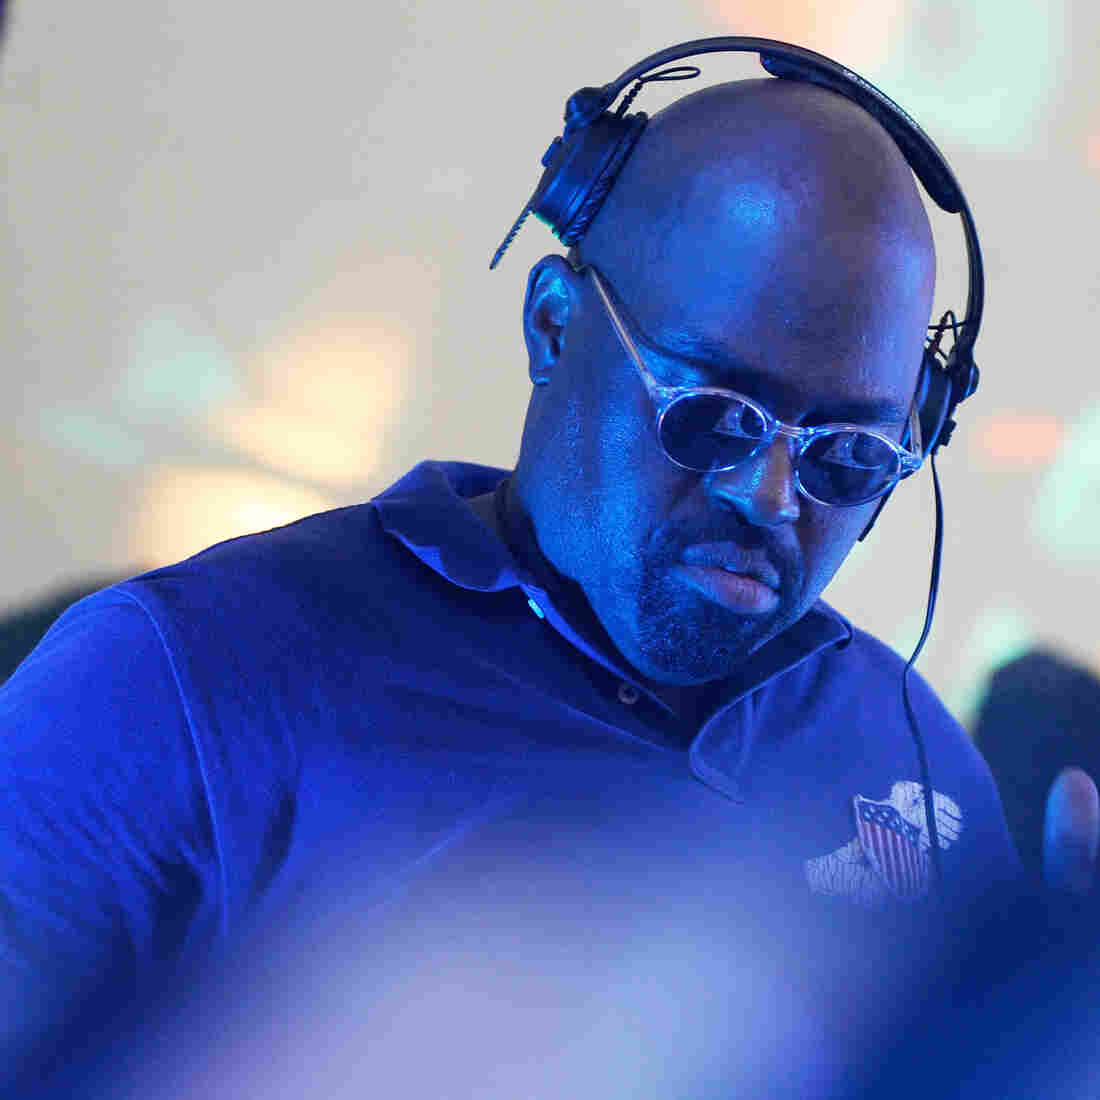 Frankie Knuckles performs at the 2009 Electric Zoo Festival in New York.